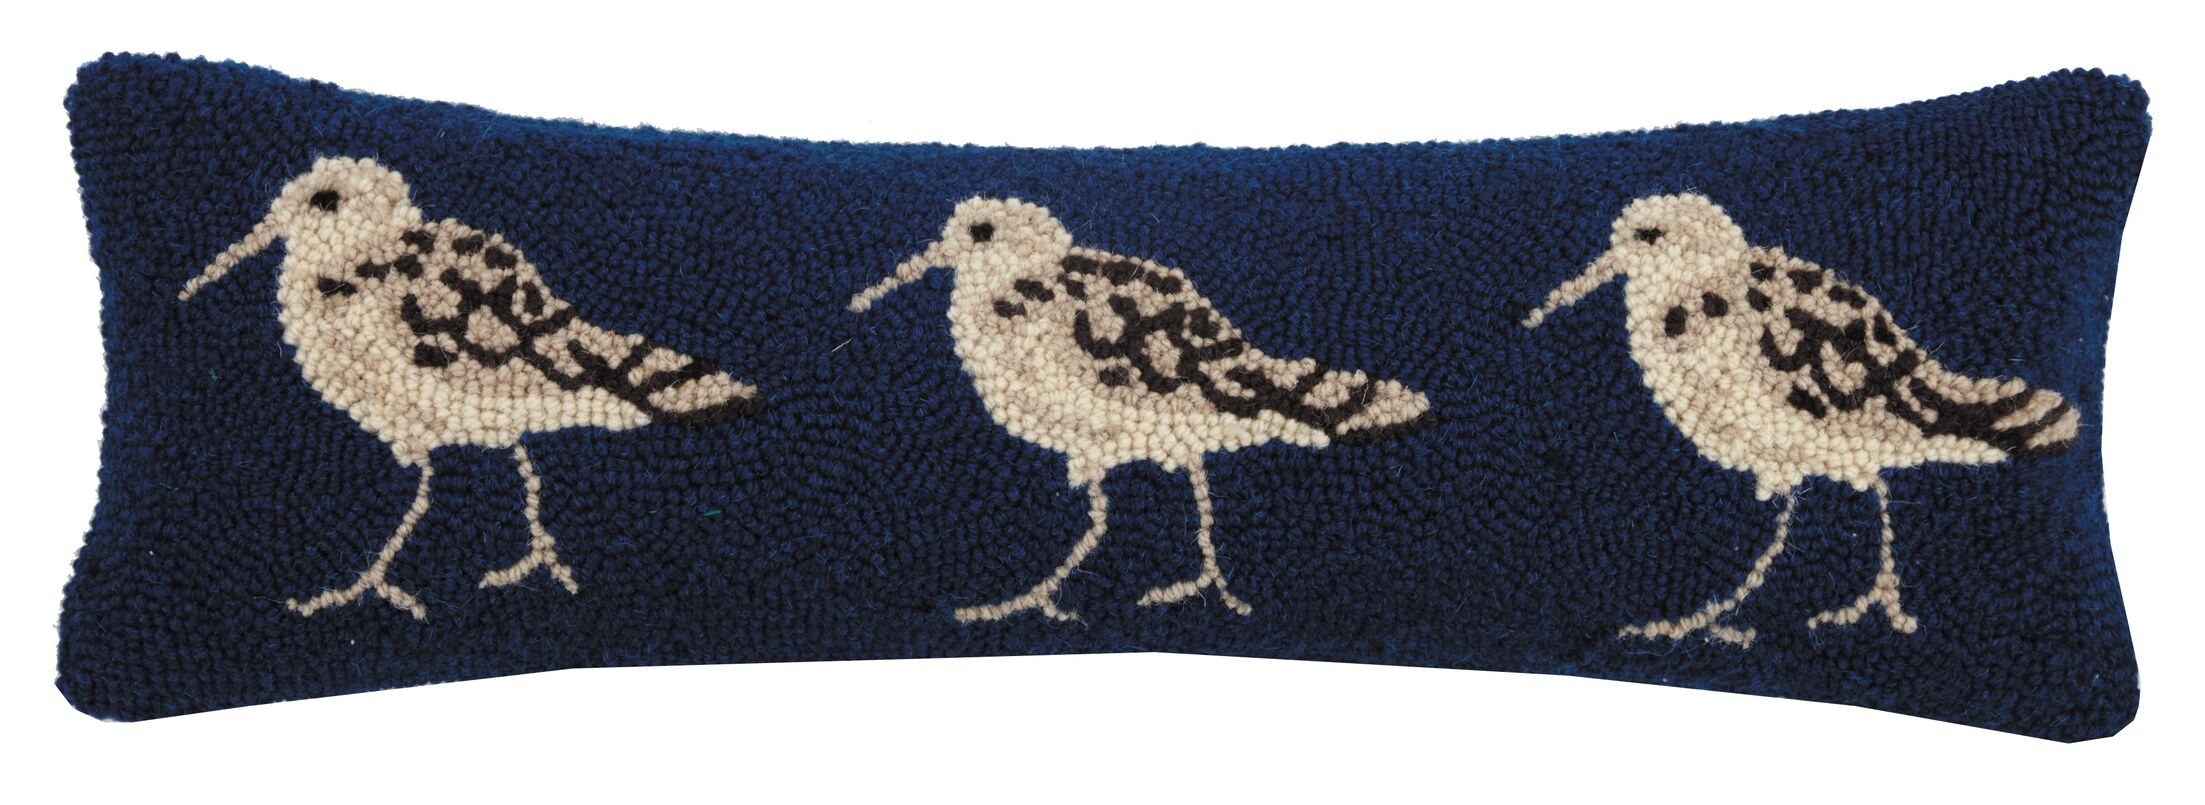 Haylie Sand Pipers Hook Wool Lumbar Pillow